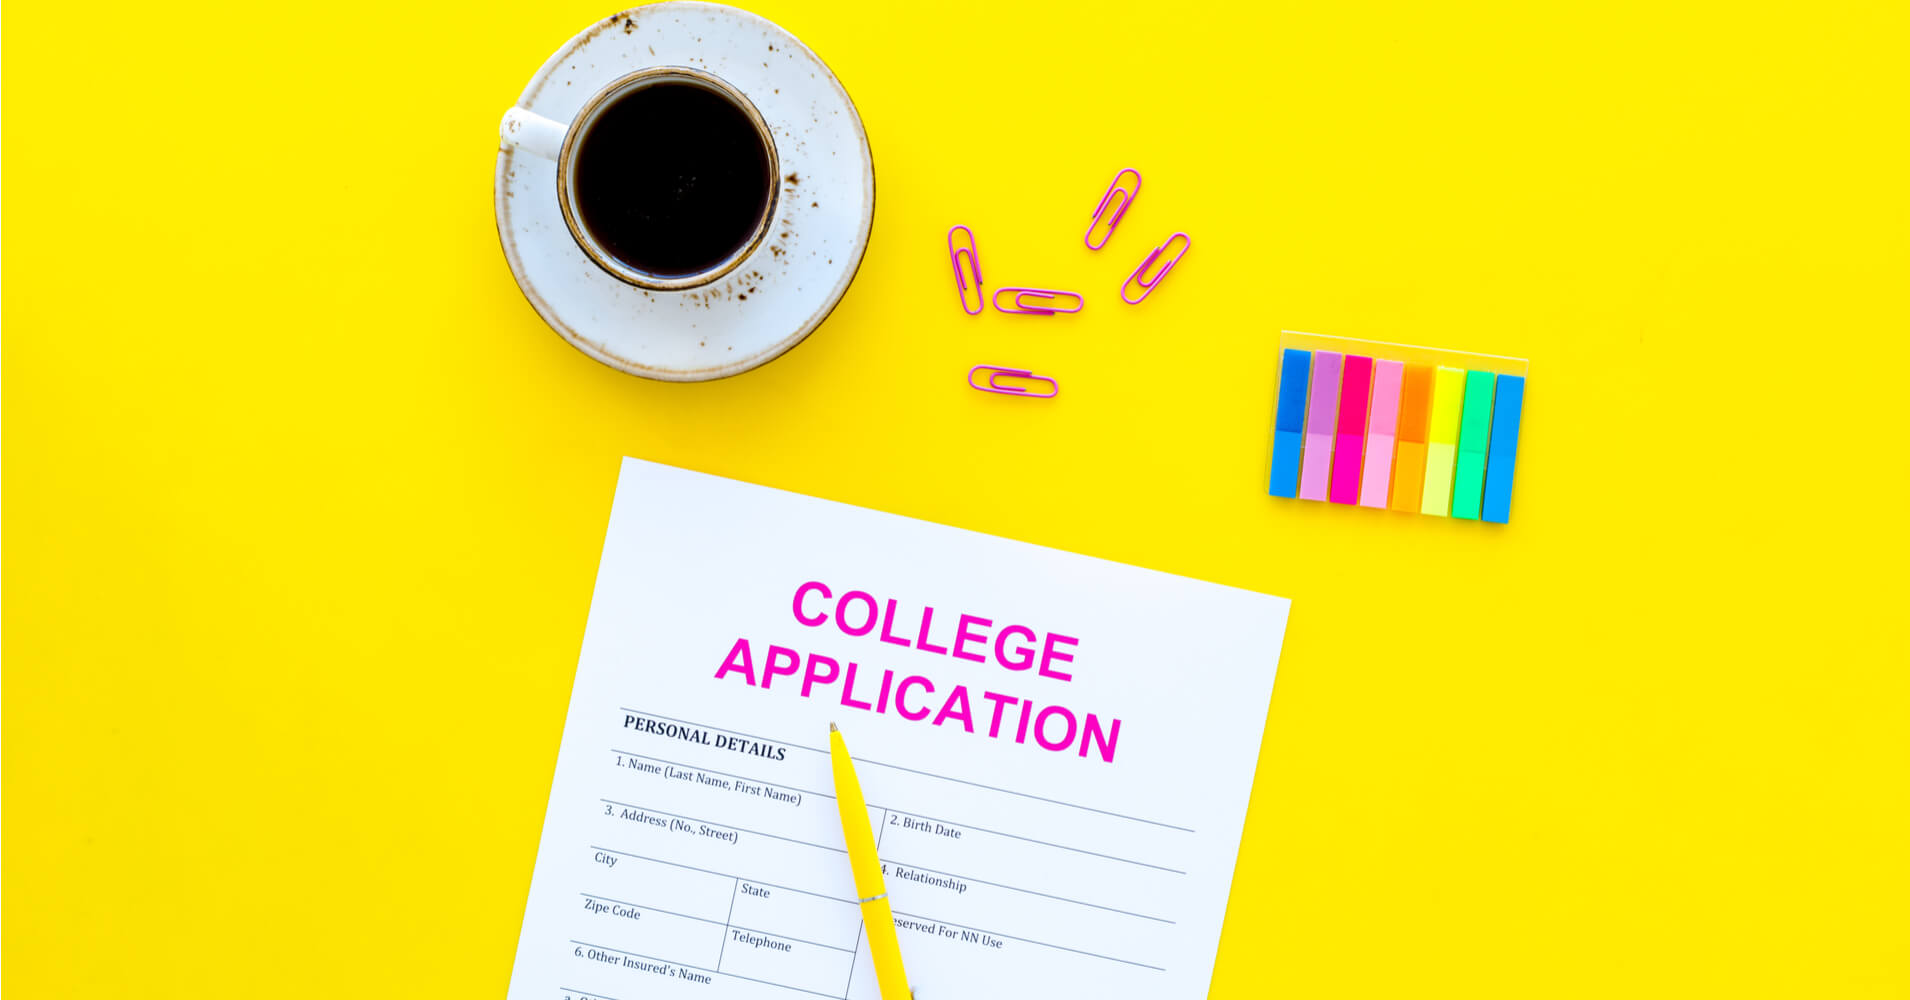 college applications san diego, financial aid for college san diego